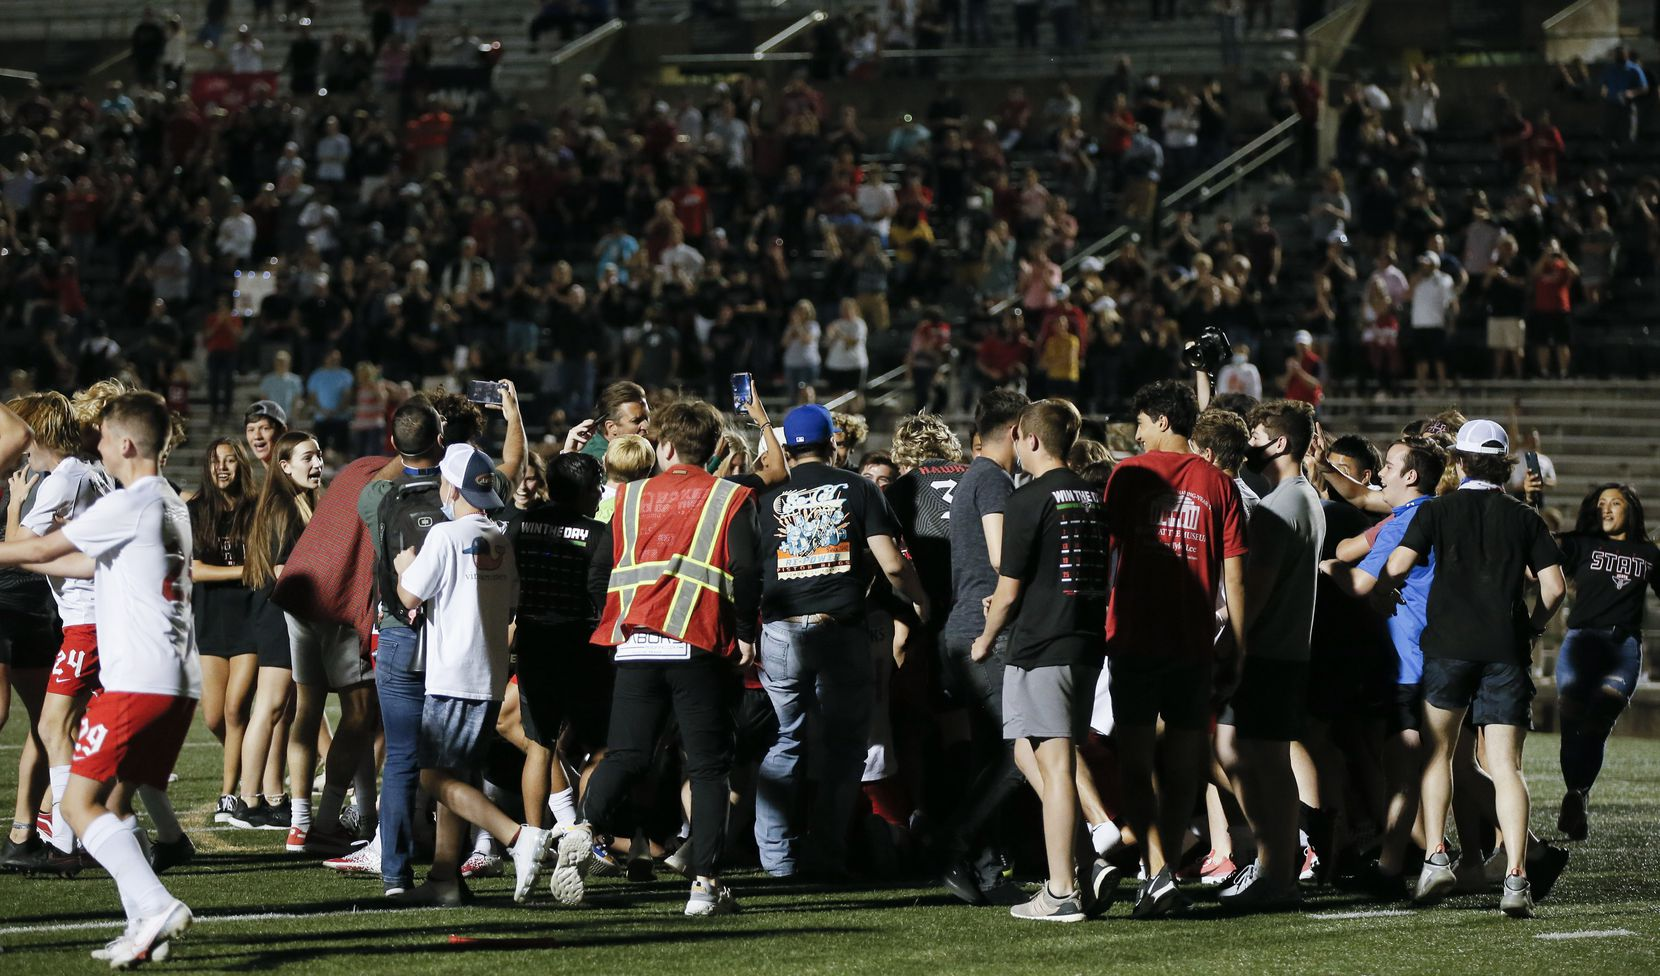 Fans rush the field to celebrate with the Rockwall-Heath boys soccer team after winning the Class 6A state semifinal over Allen 3-1 in a shootout at Mesquite Memorial Stadium in Mesquite, Tuesday, April 13, 2021. (Brandon Wade/Special Contributor)